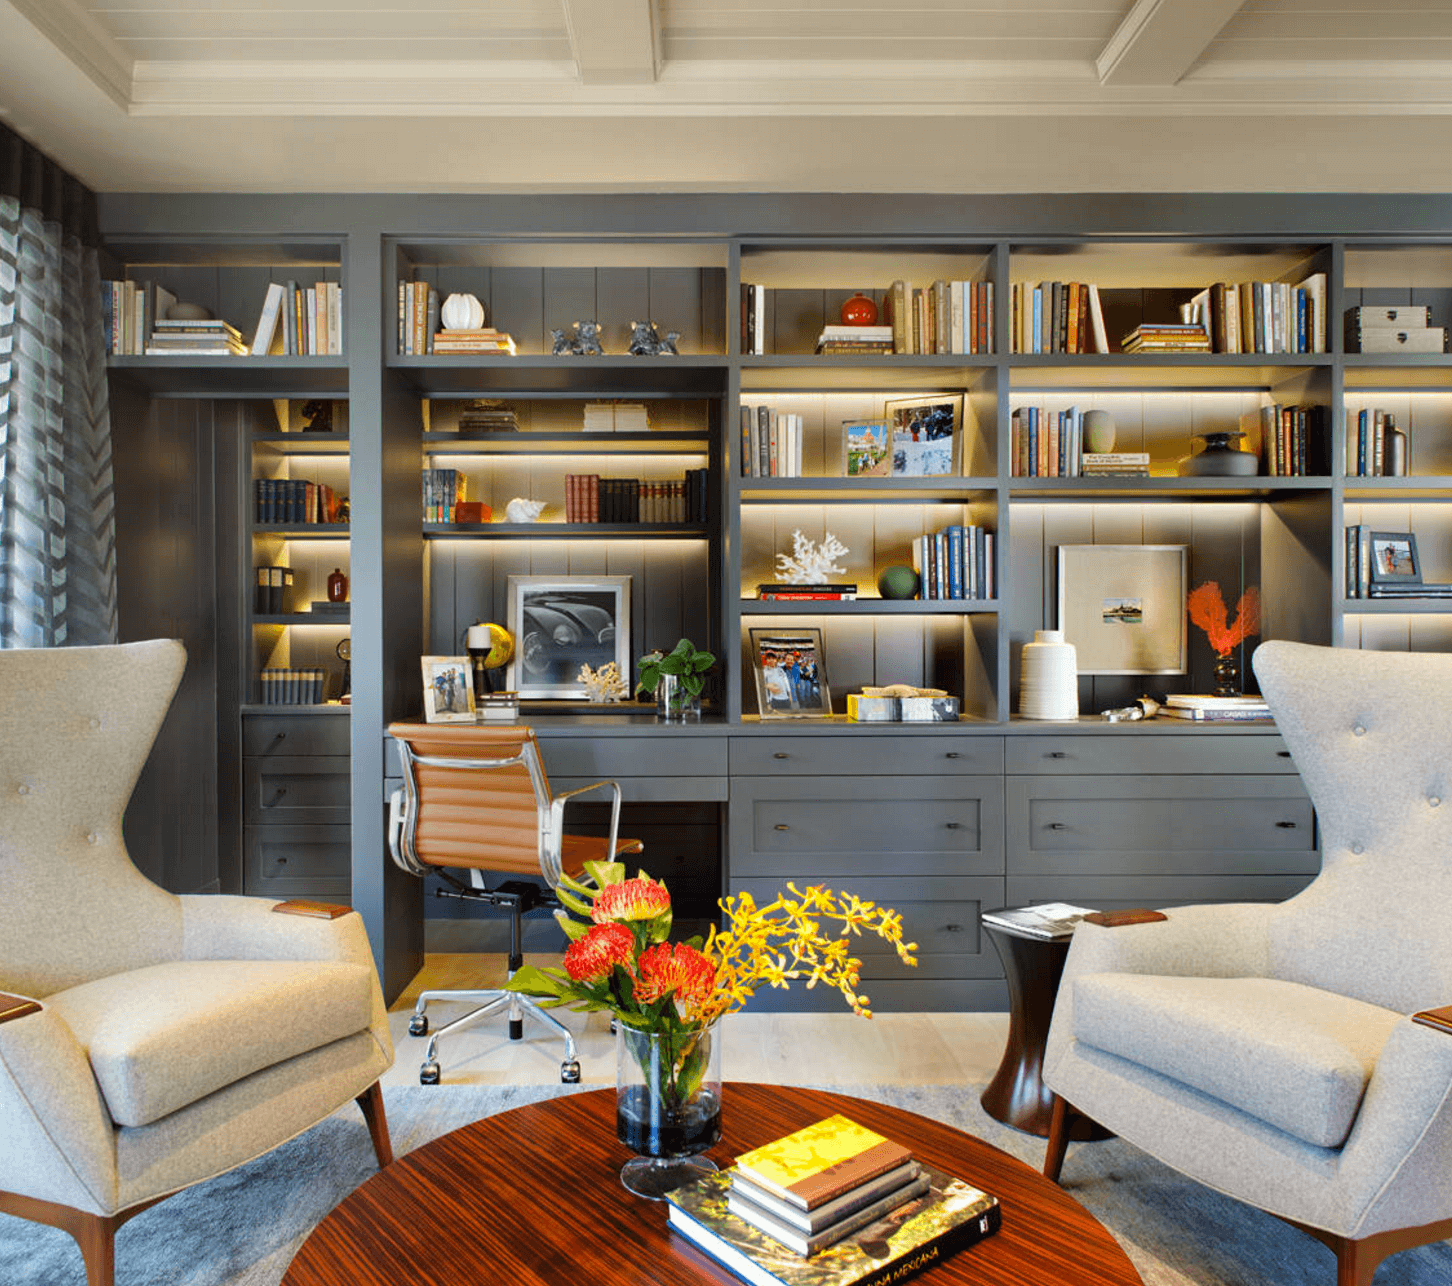 Home Office Designs Living Room Decorating Ideas: 4 Modern And Chic Ideas For Your Home Office